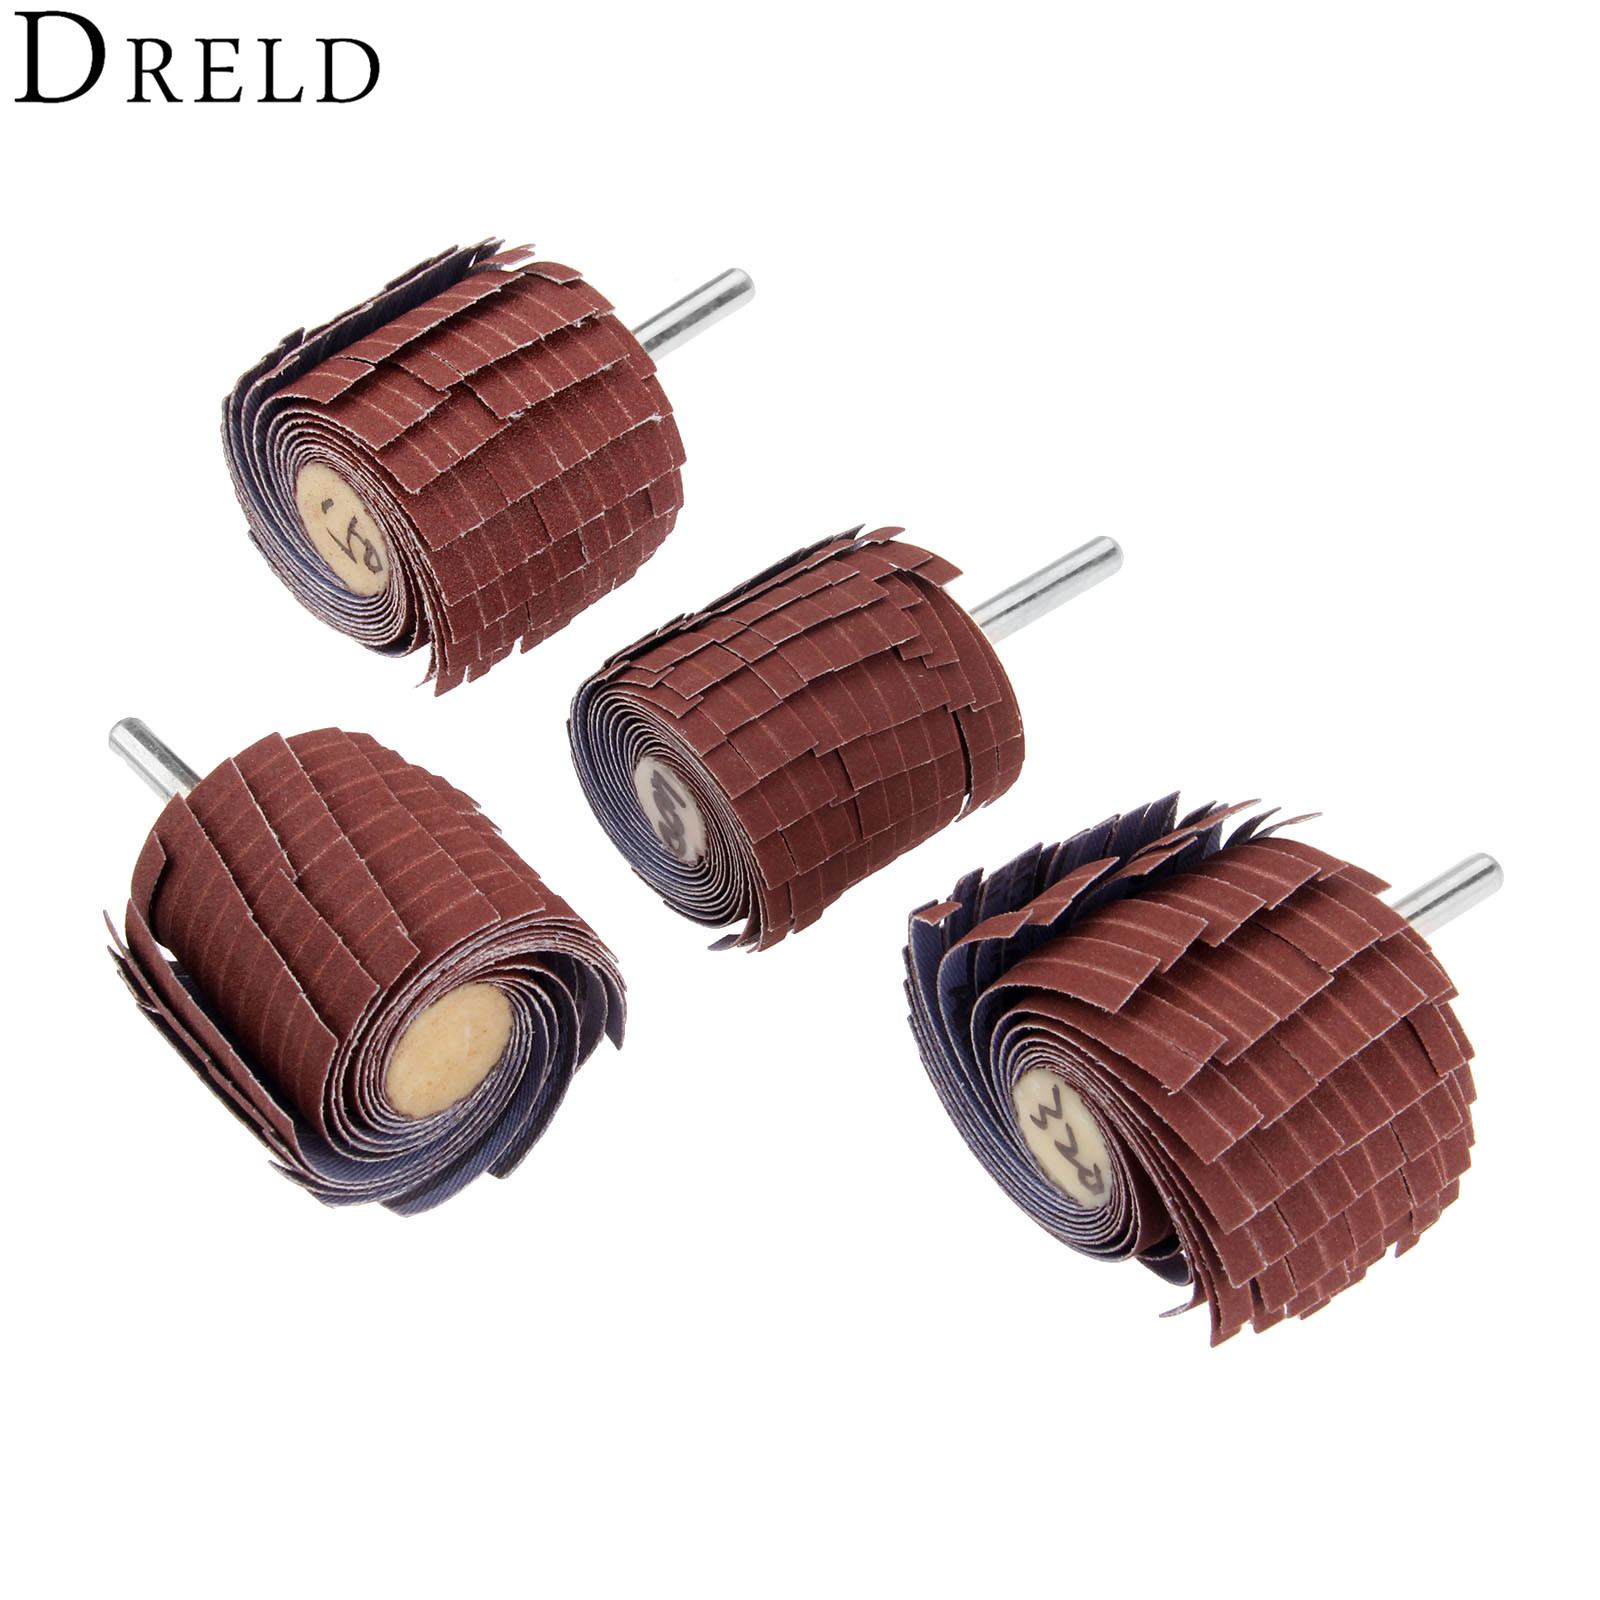 DRELD 1Pc Dremel Accessories 150-400 Grit Sanding Flap Wheel 6mm Shank Sanding Grinding Sand Paper Shutter Wheel For Rotary Tool